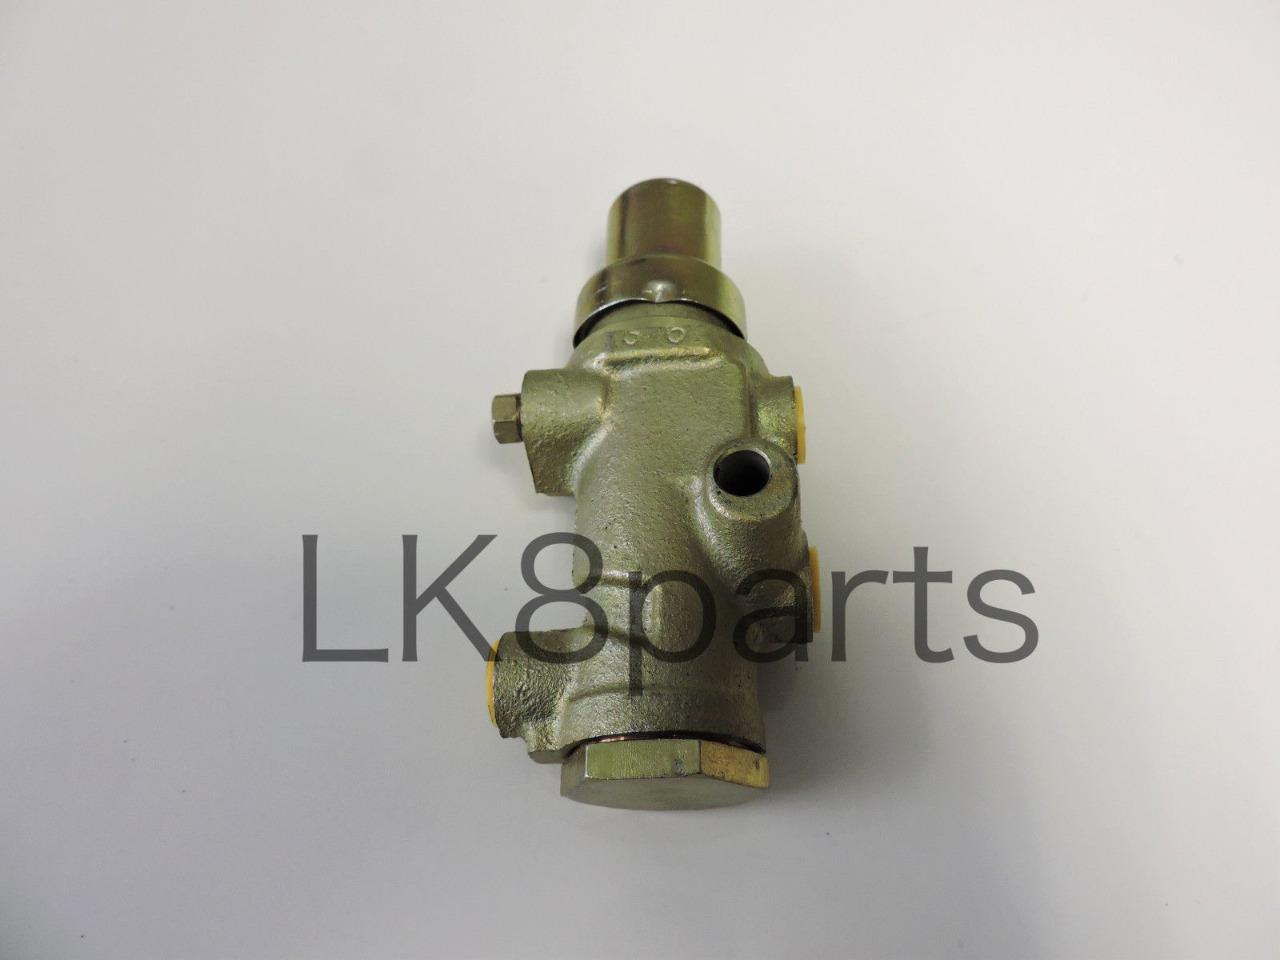 ANR3194 LAND ROVER DISCOVERY 1 1994-1999 BRAKE PRESSURE REDUCTION VALVE ASSEMBLY PART